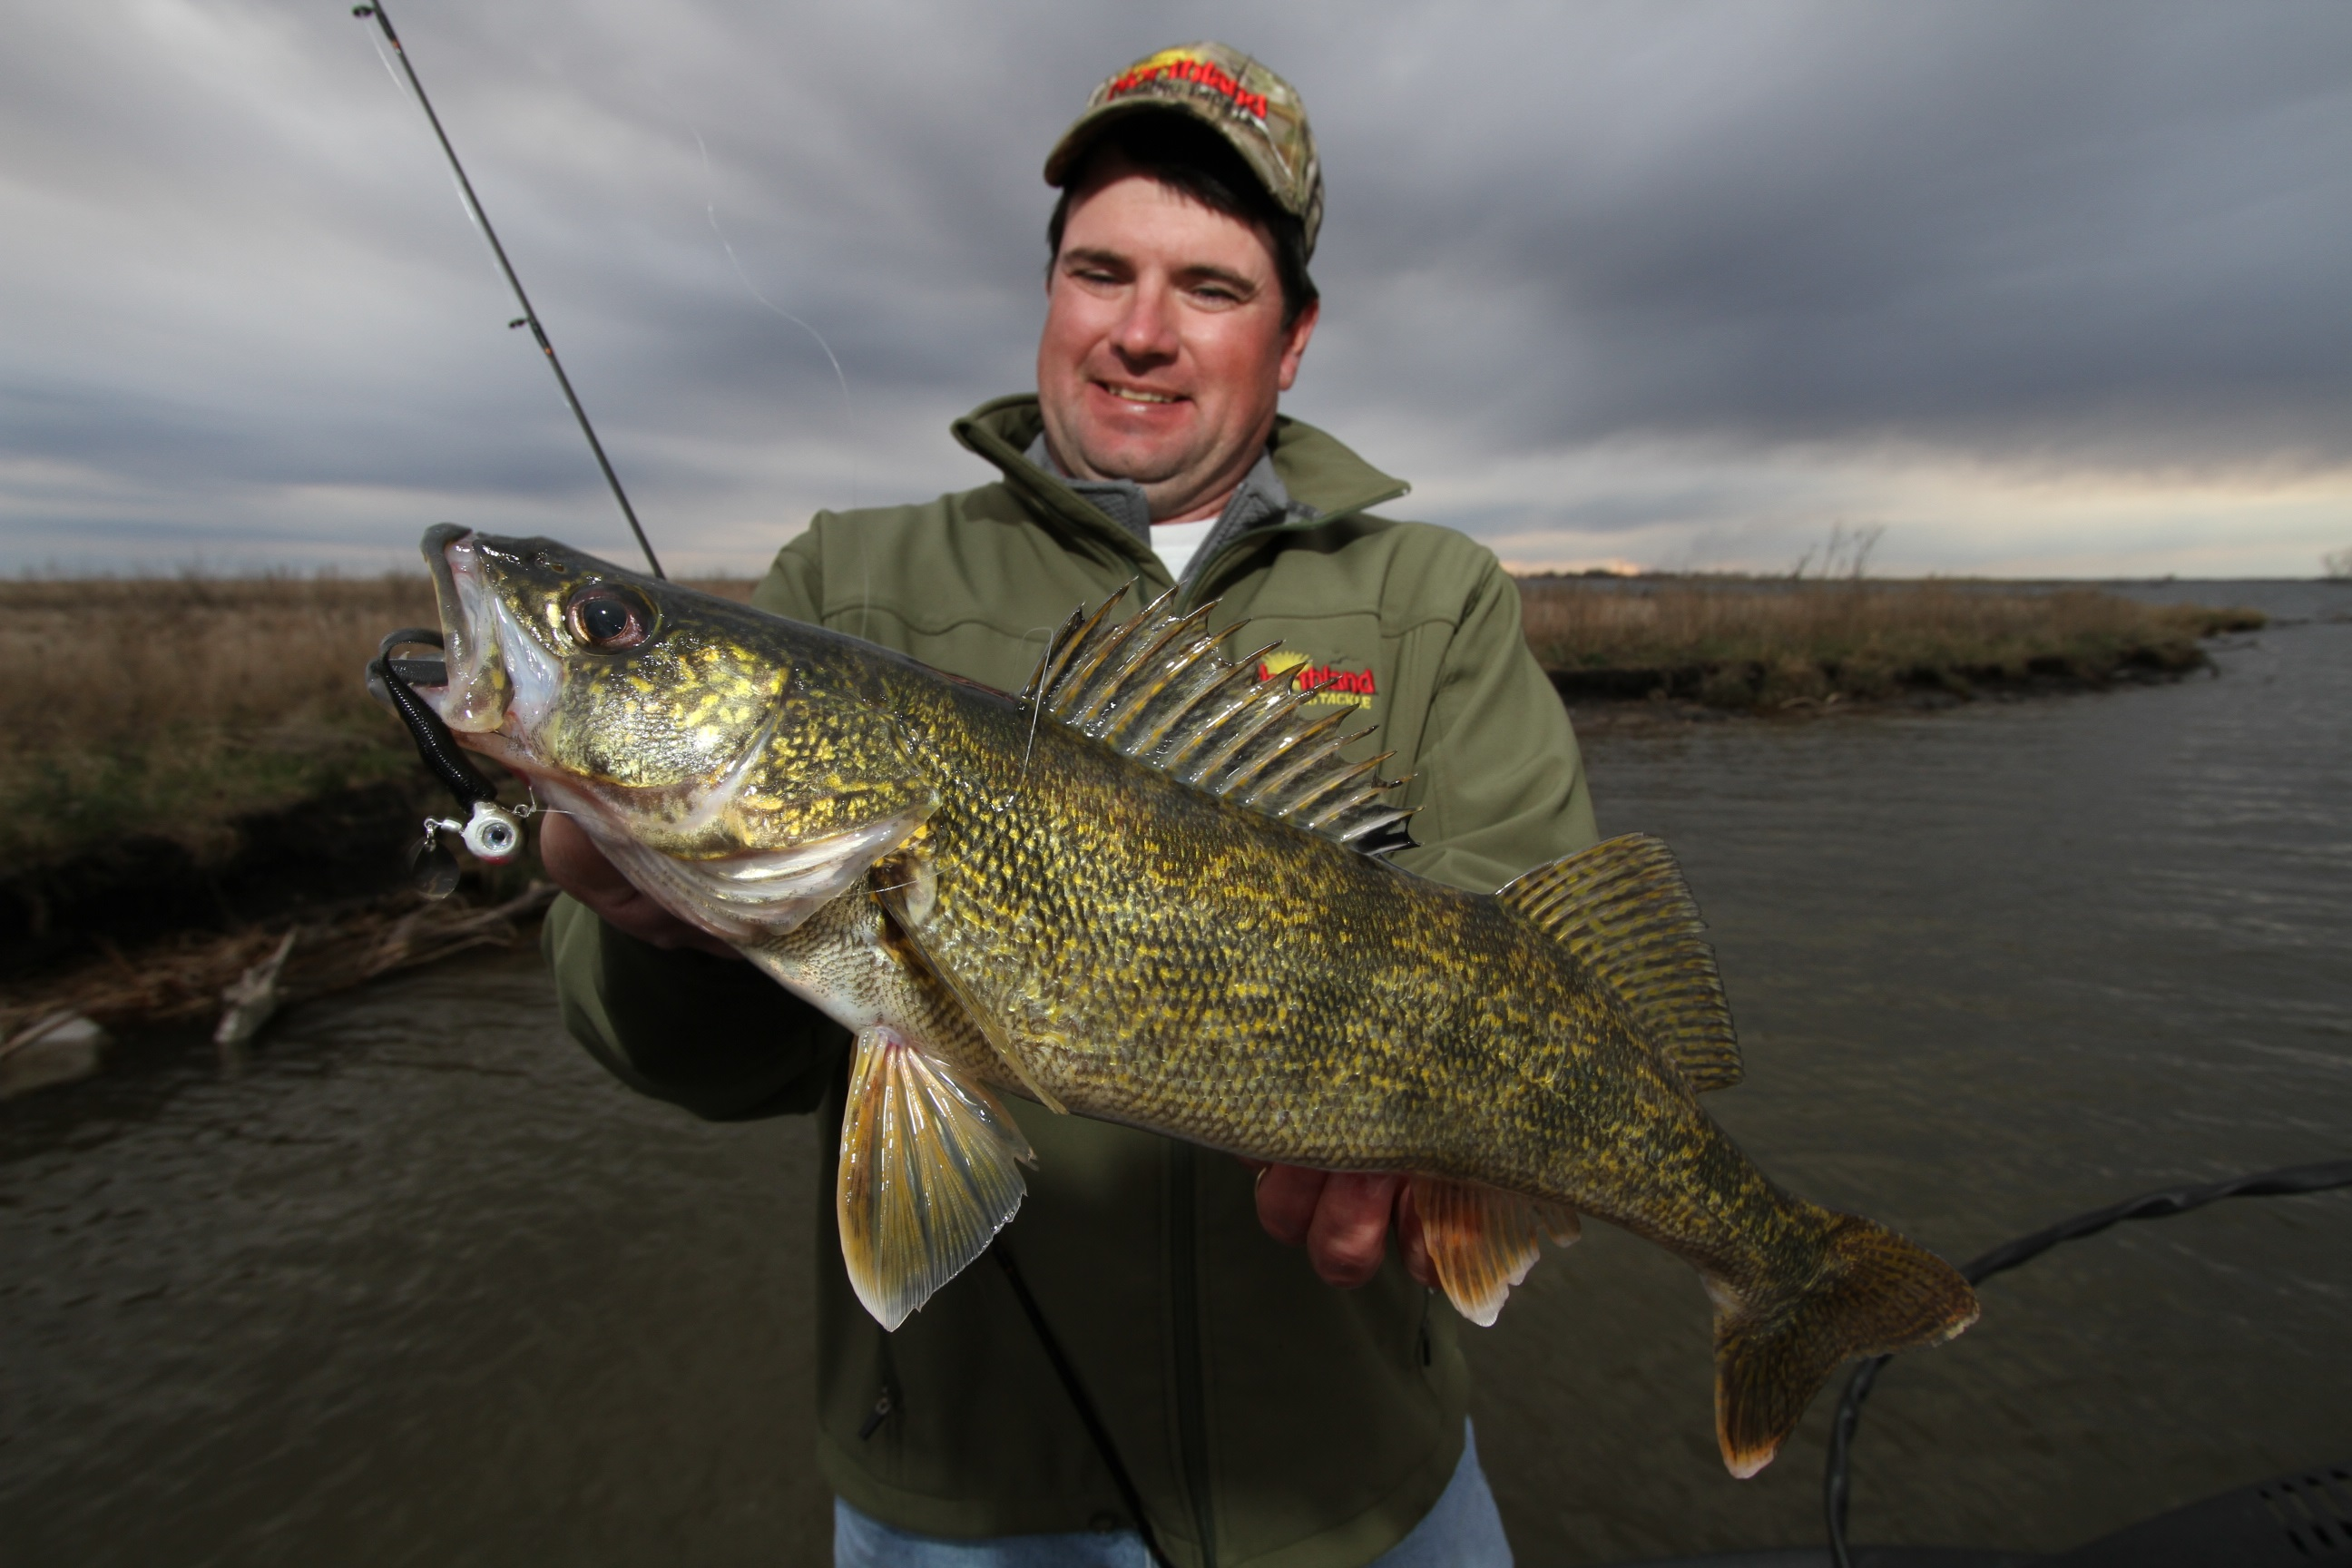 Walleye fishing fishing minnesota hunting reports for Fishing for walleye